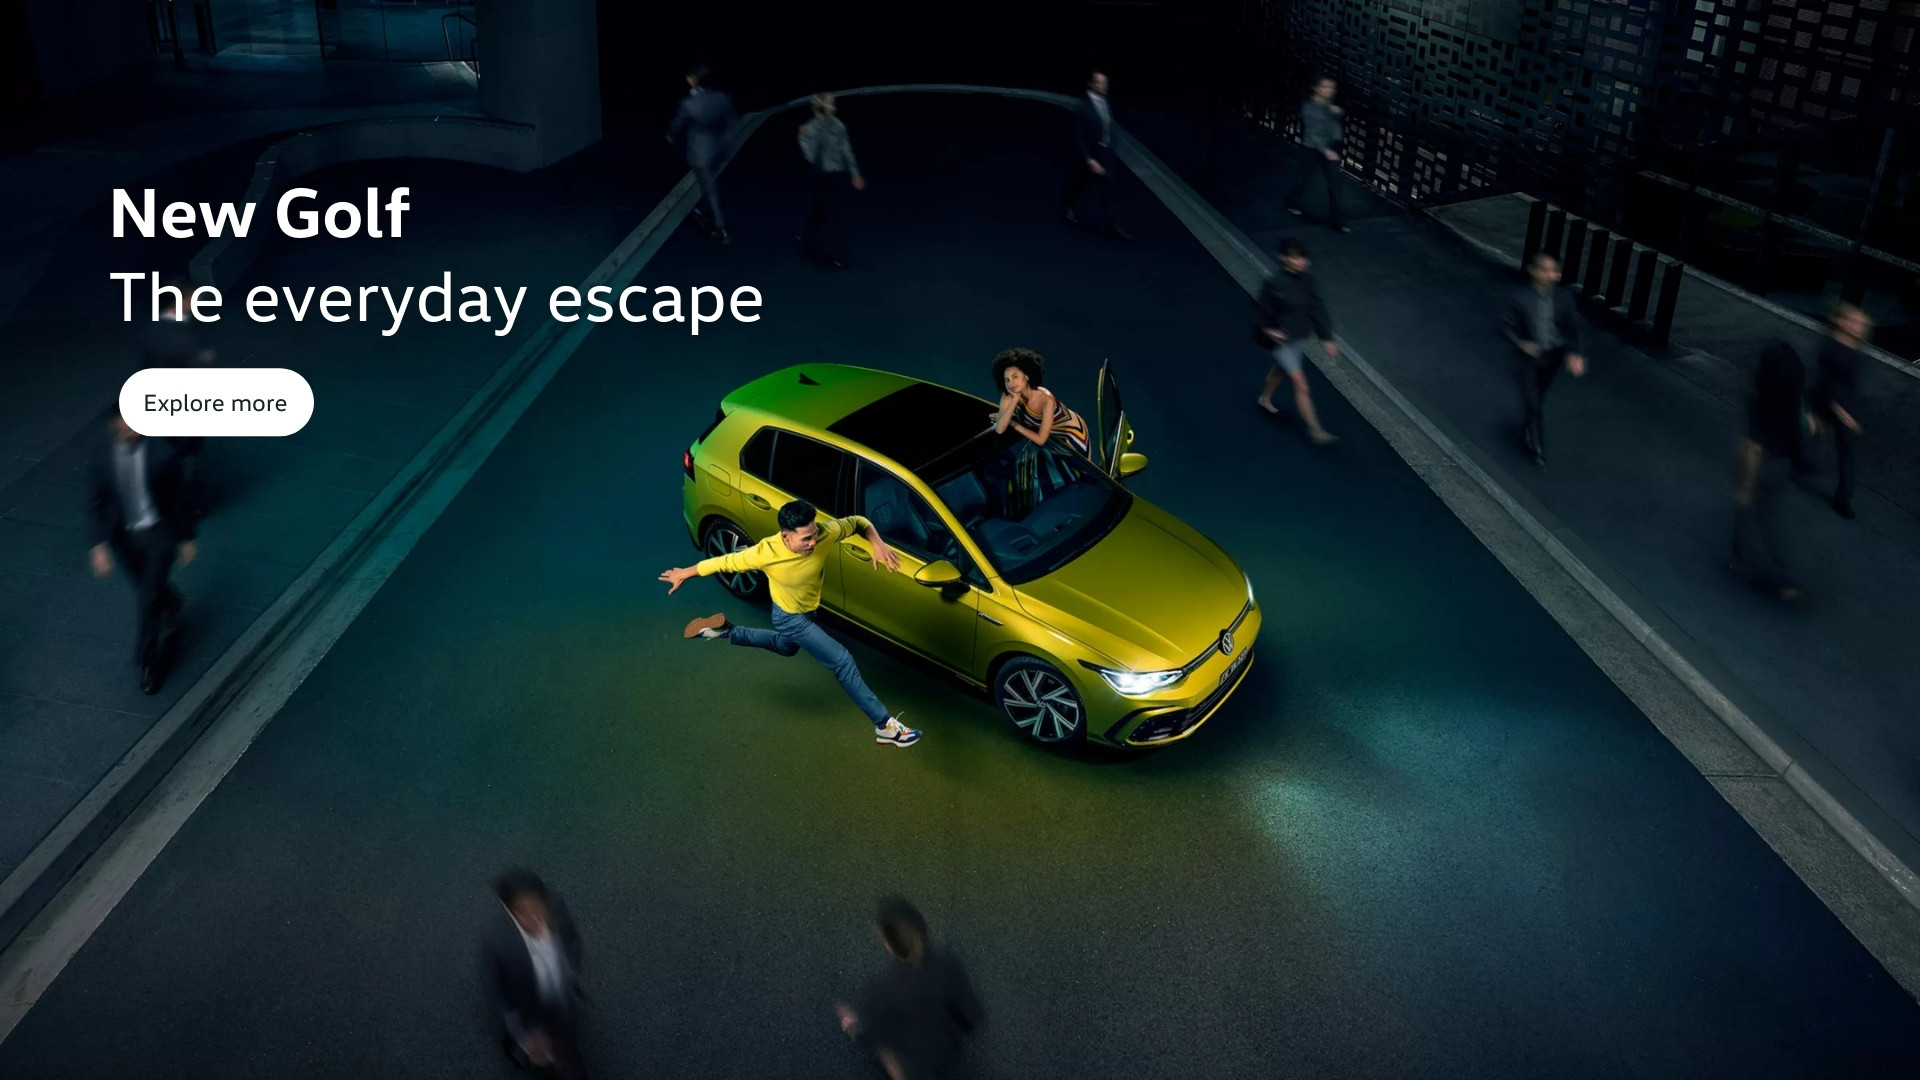 New Golf. The everyday escape.